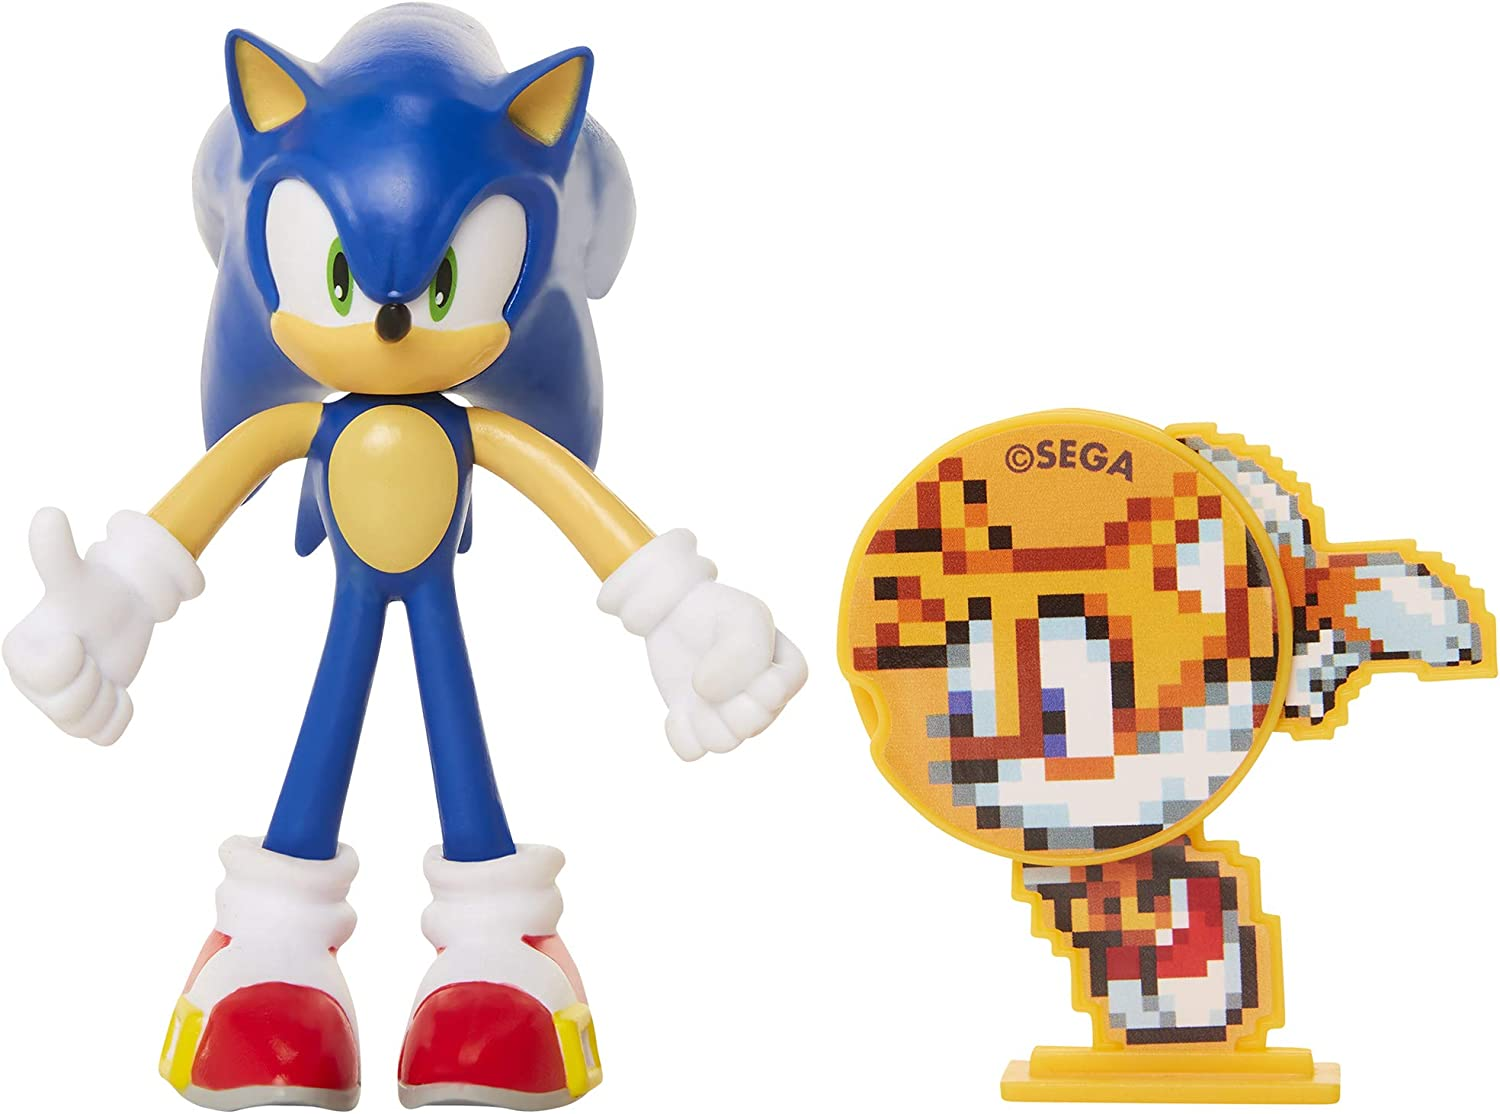 """Sonic The Hedgehog Collectible Sonic 4"""" Bendable Flexible Action Figure with Bendable Limbs & Spinable Friend Disk Accessory Perfect for Kids & Collectors Alike for Ages 3+"""